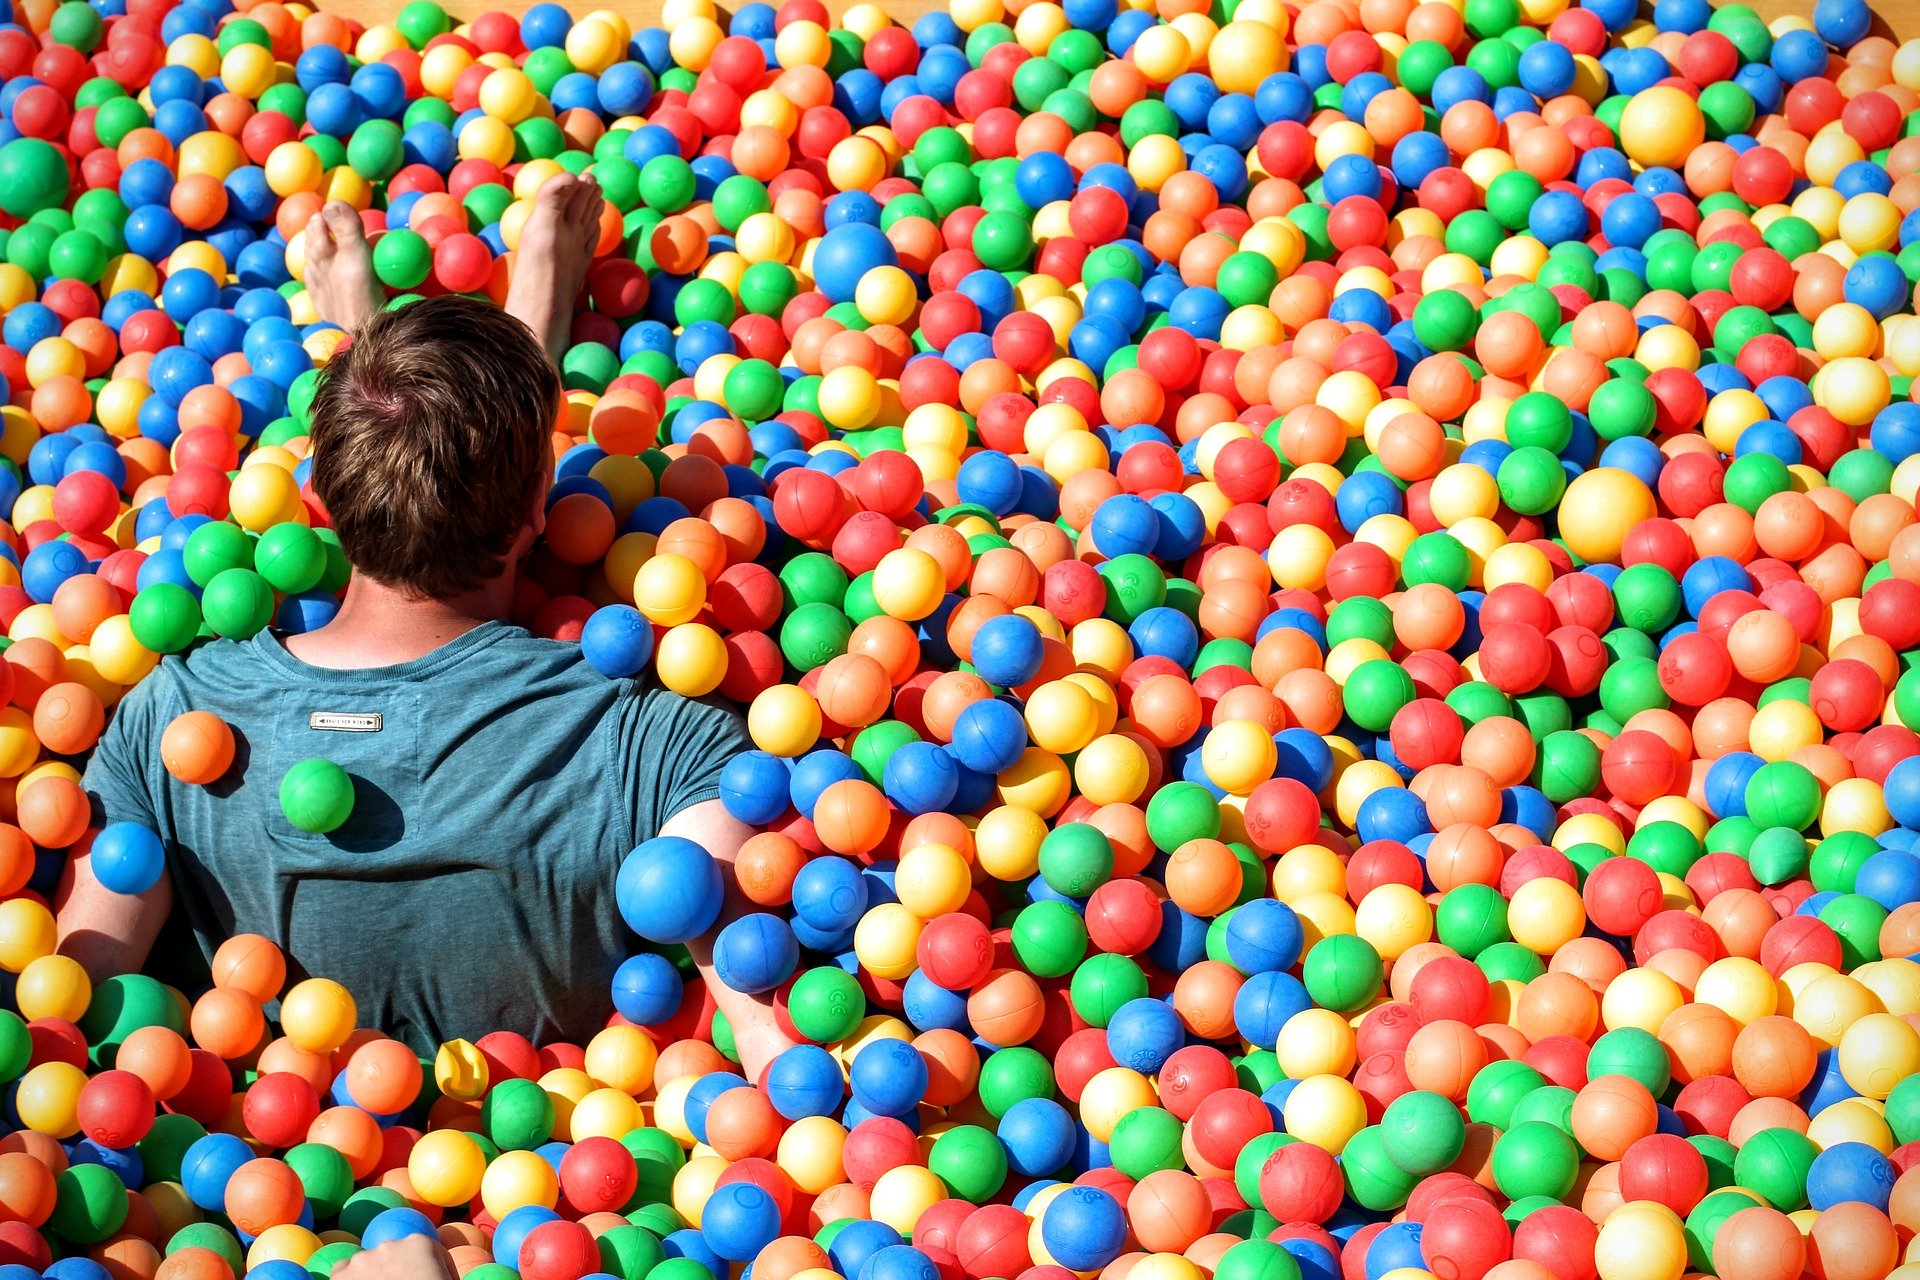 man has fun in a ball pit